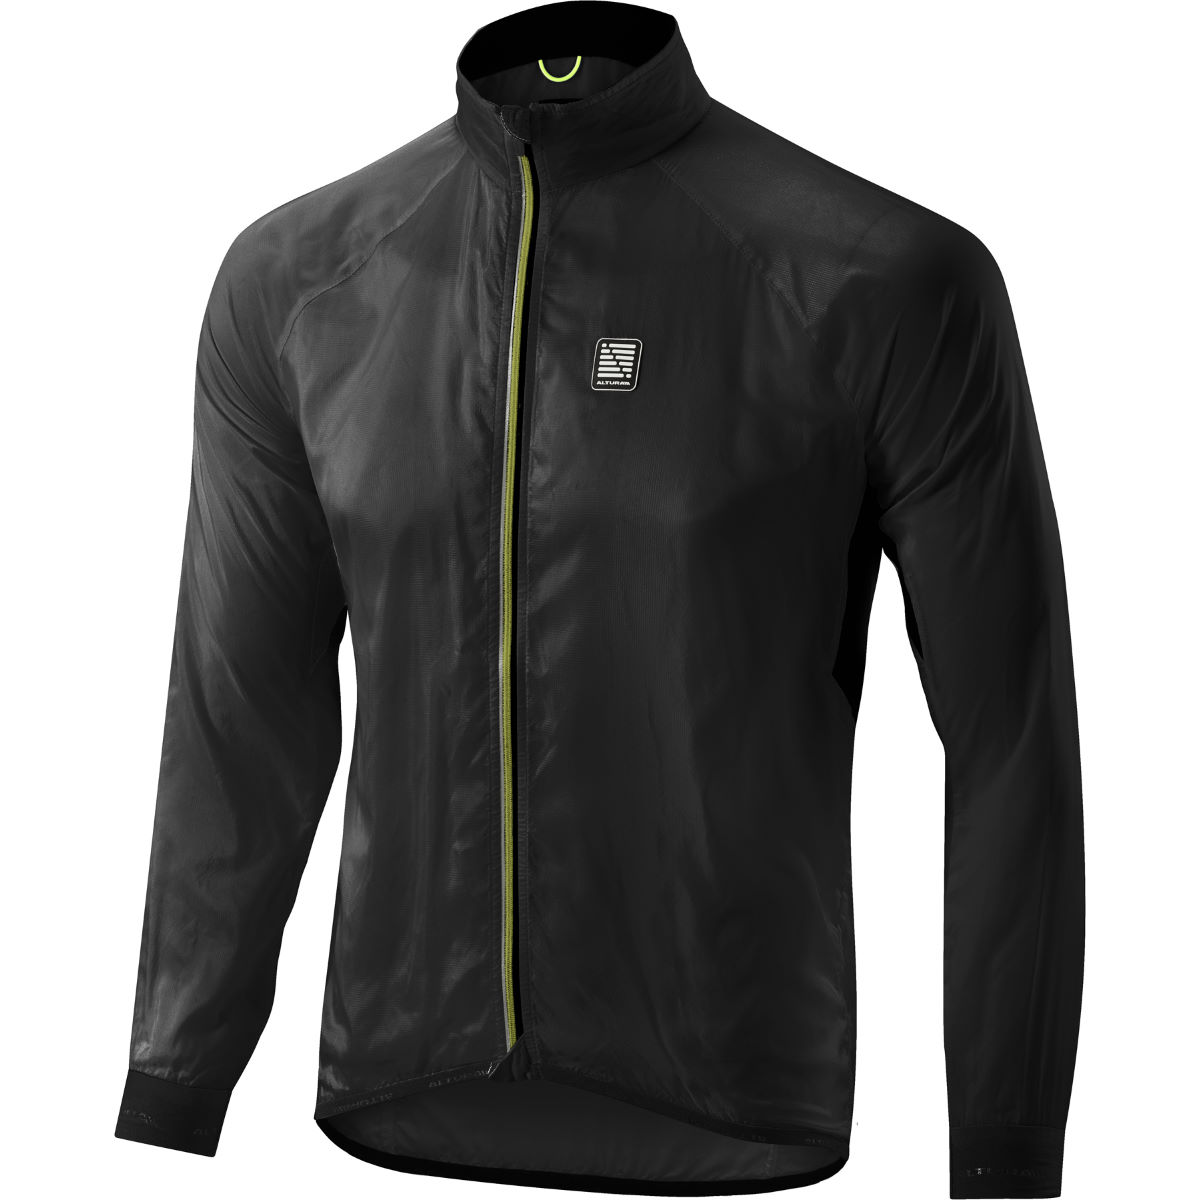 Veste Altura Podium Shell (coupe-vent) - Large Noir Coupe-vents vélo